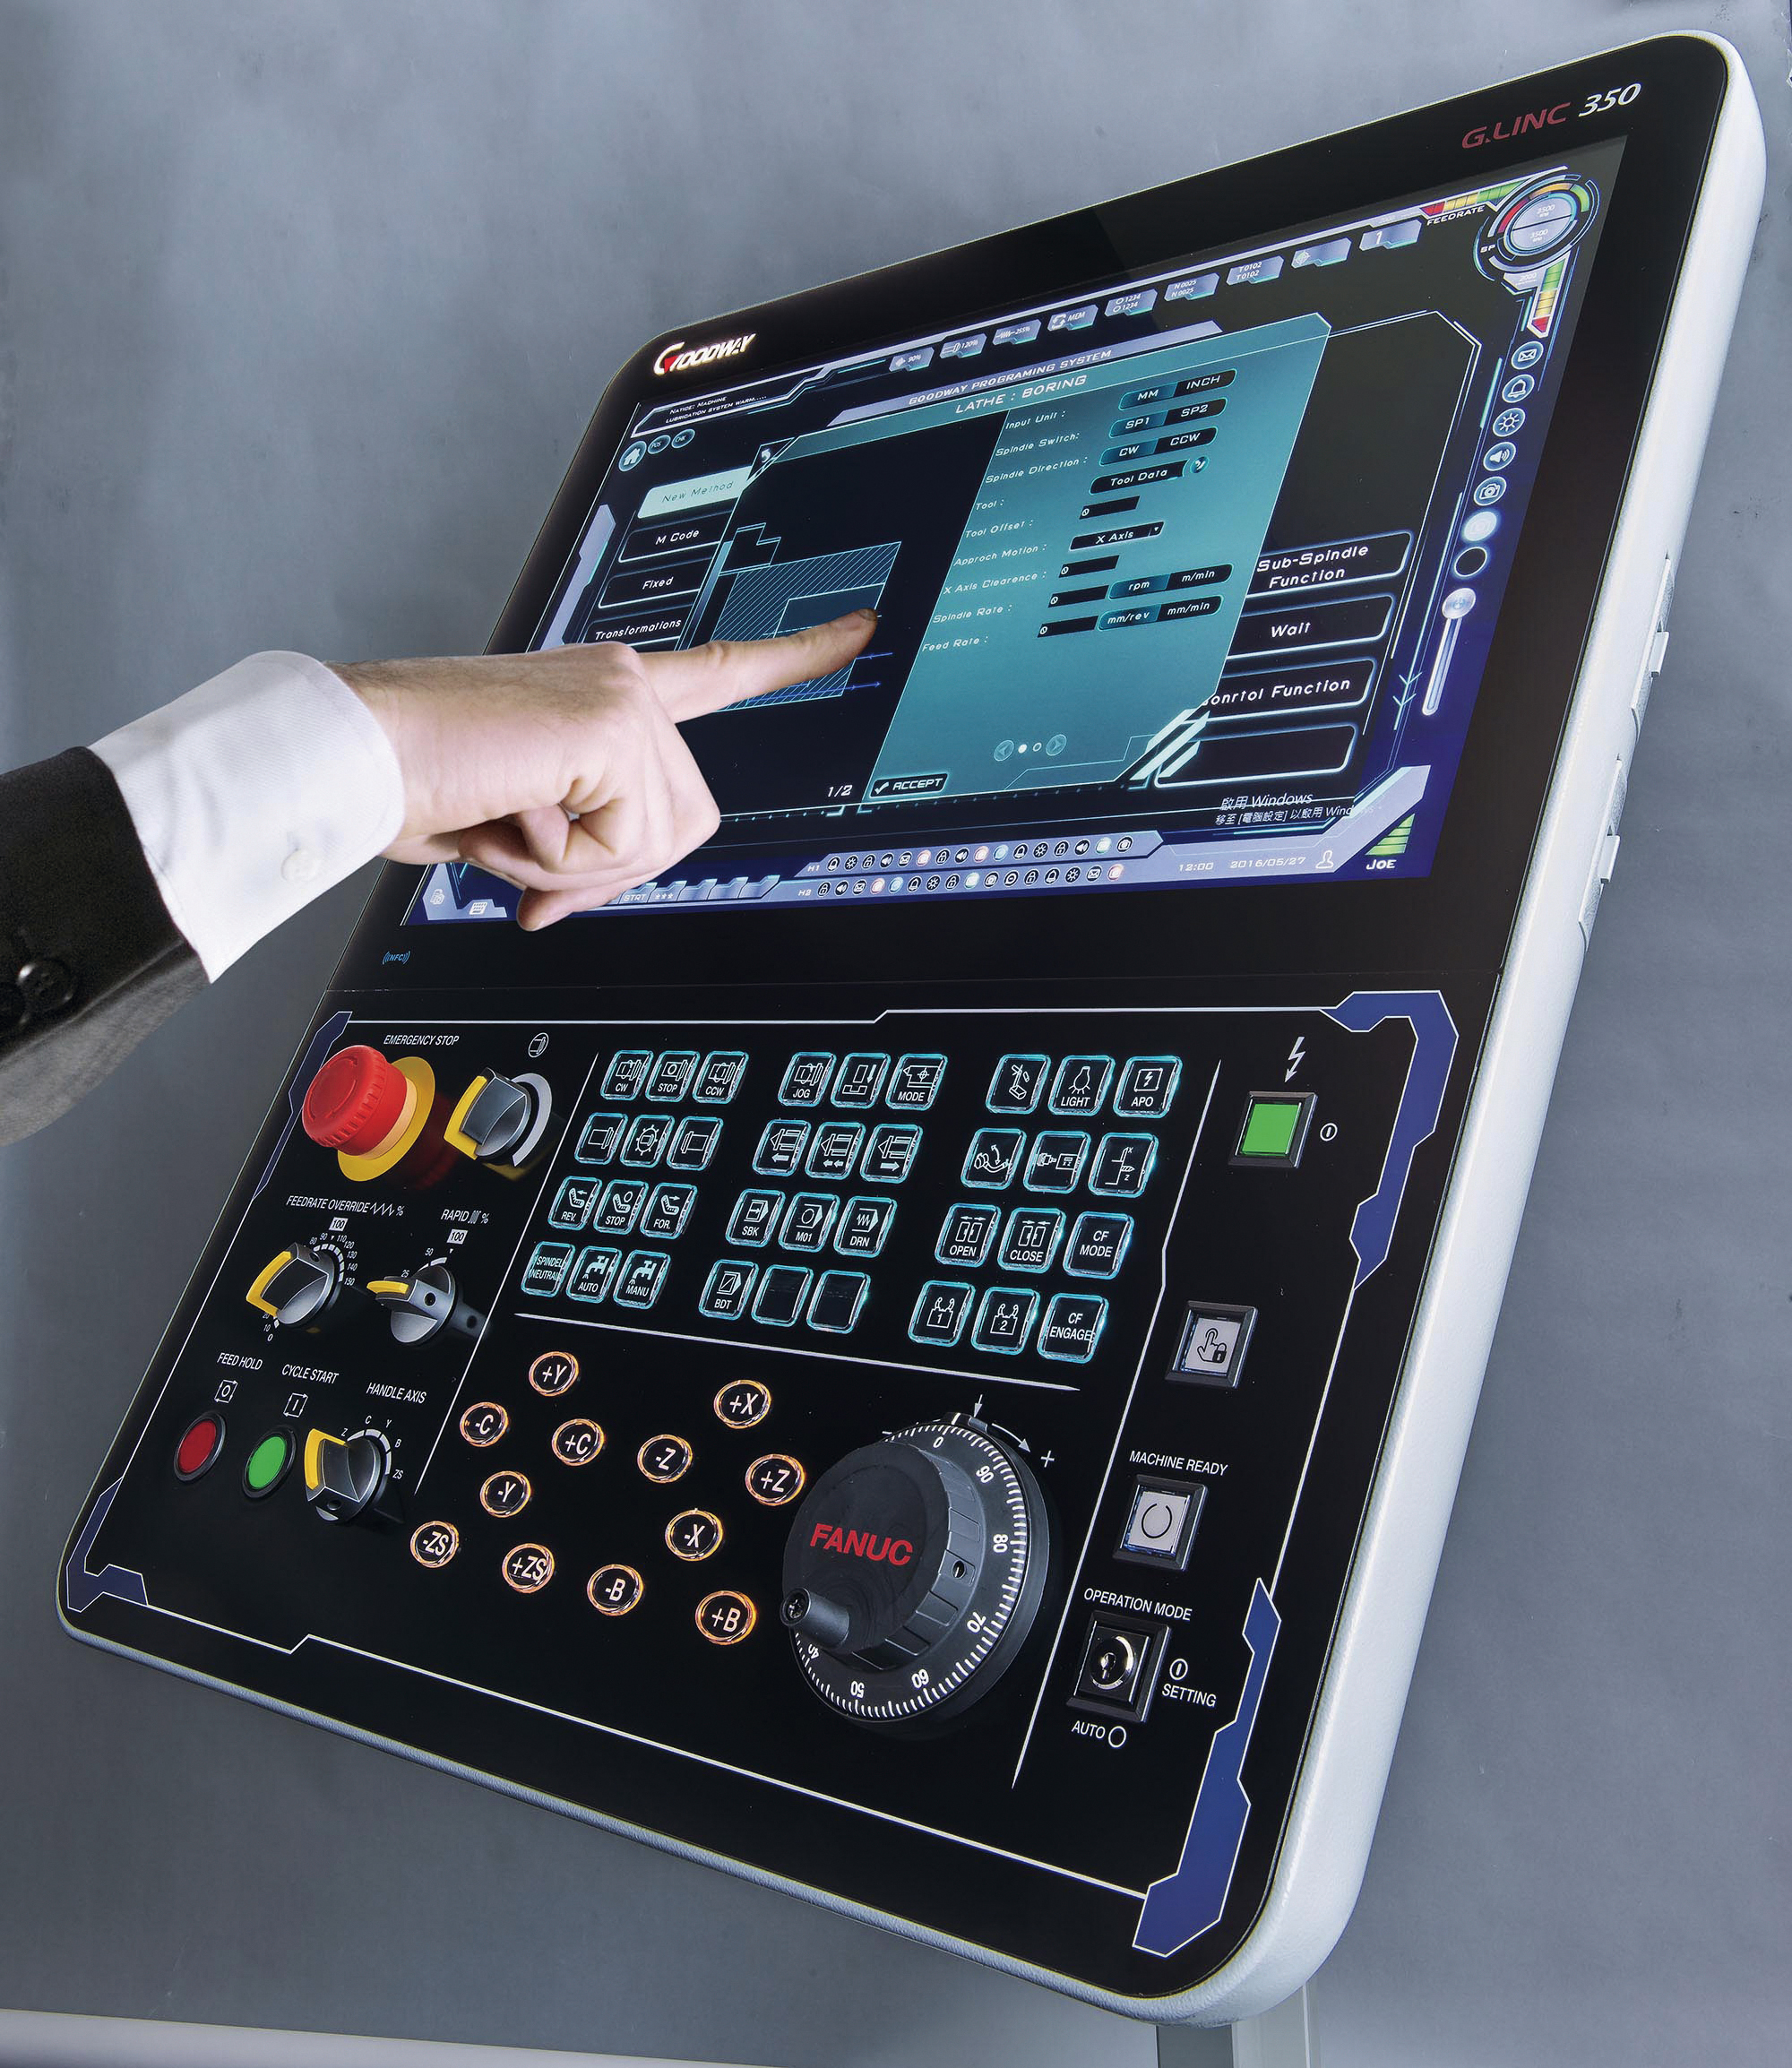 The control module of a machine tool is its most essential component, like a human brain. (courtesy of Goodway Machine)